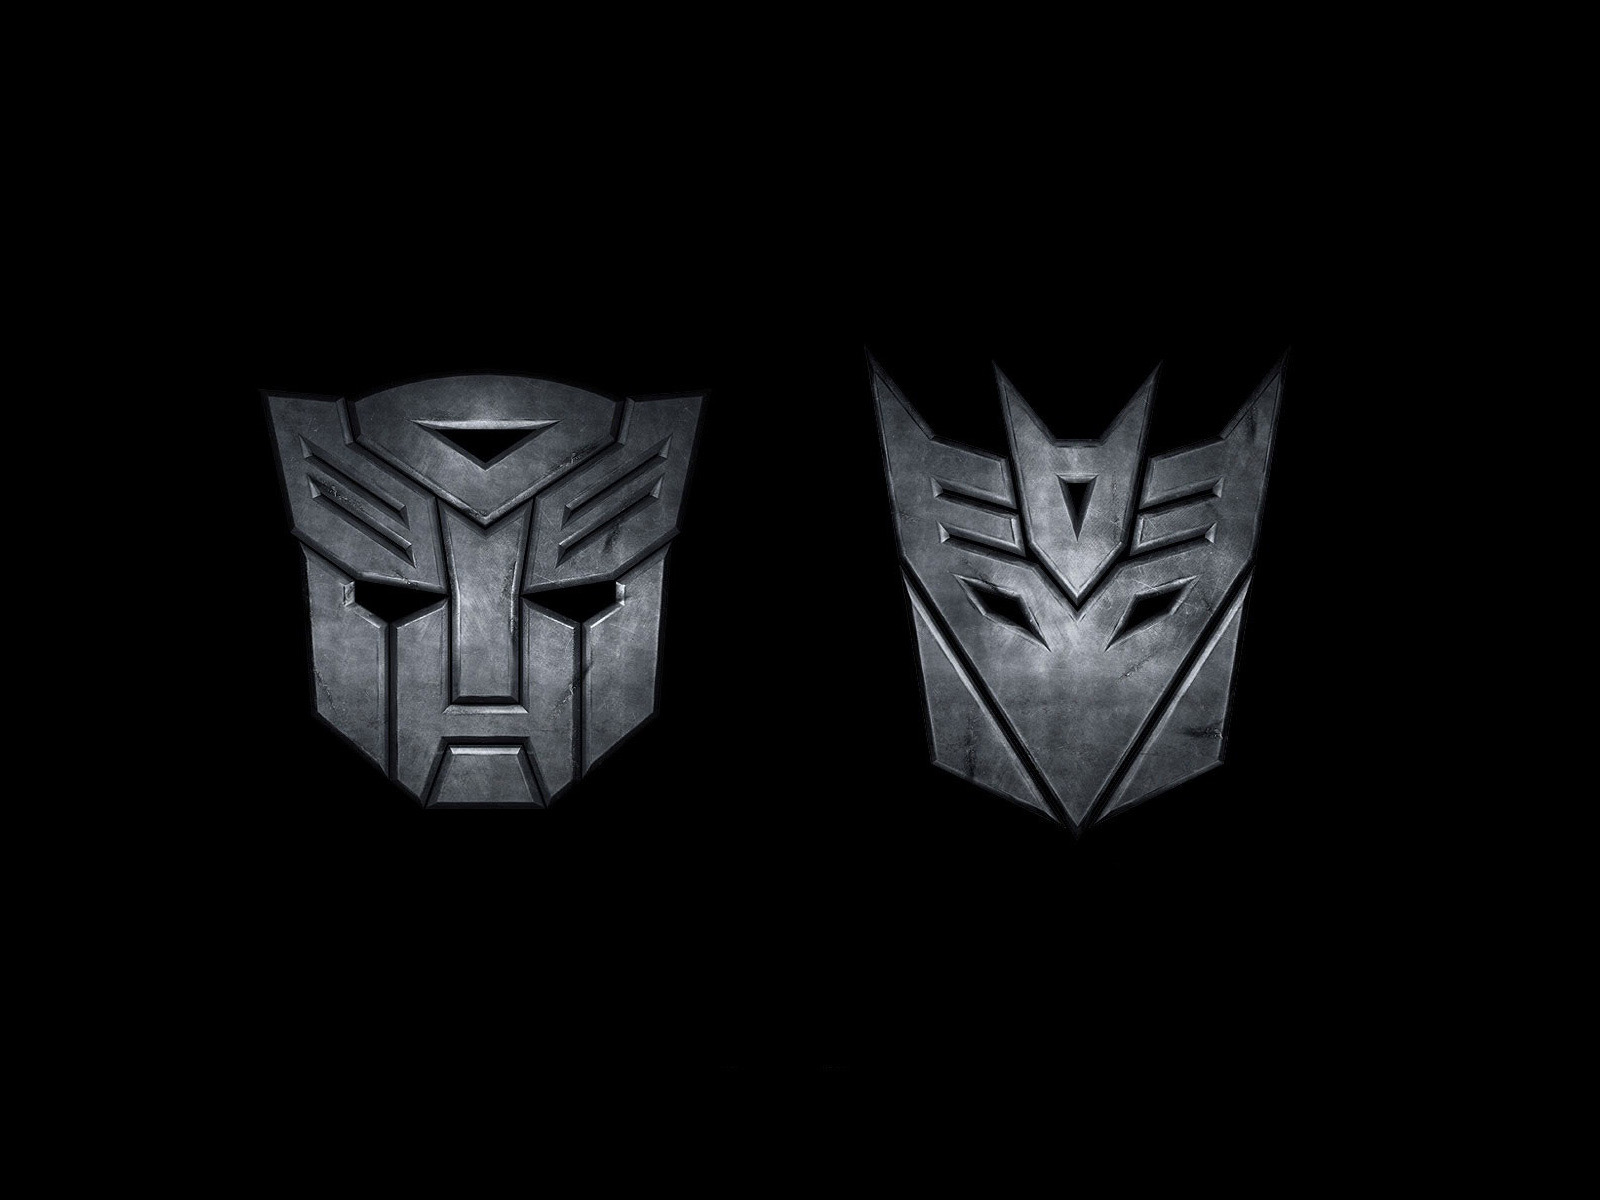 autobots and decepticons logo transformers wallpaper 1600x1200